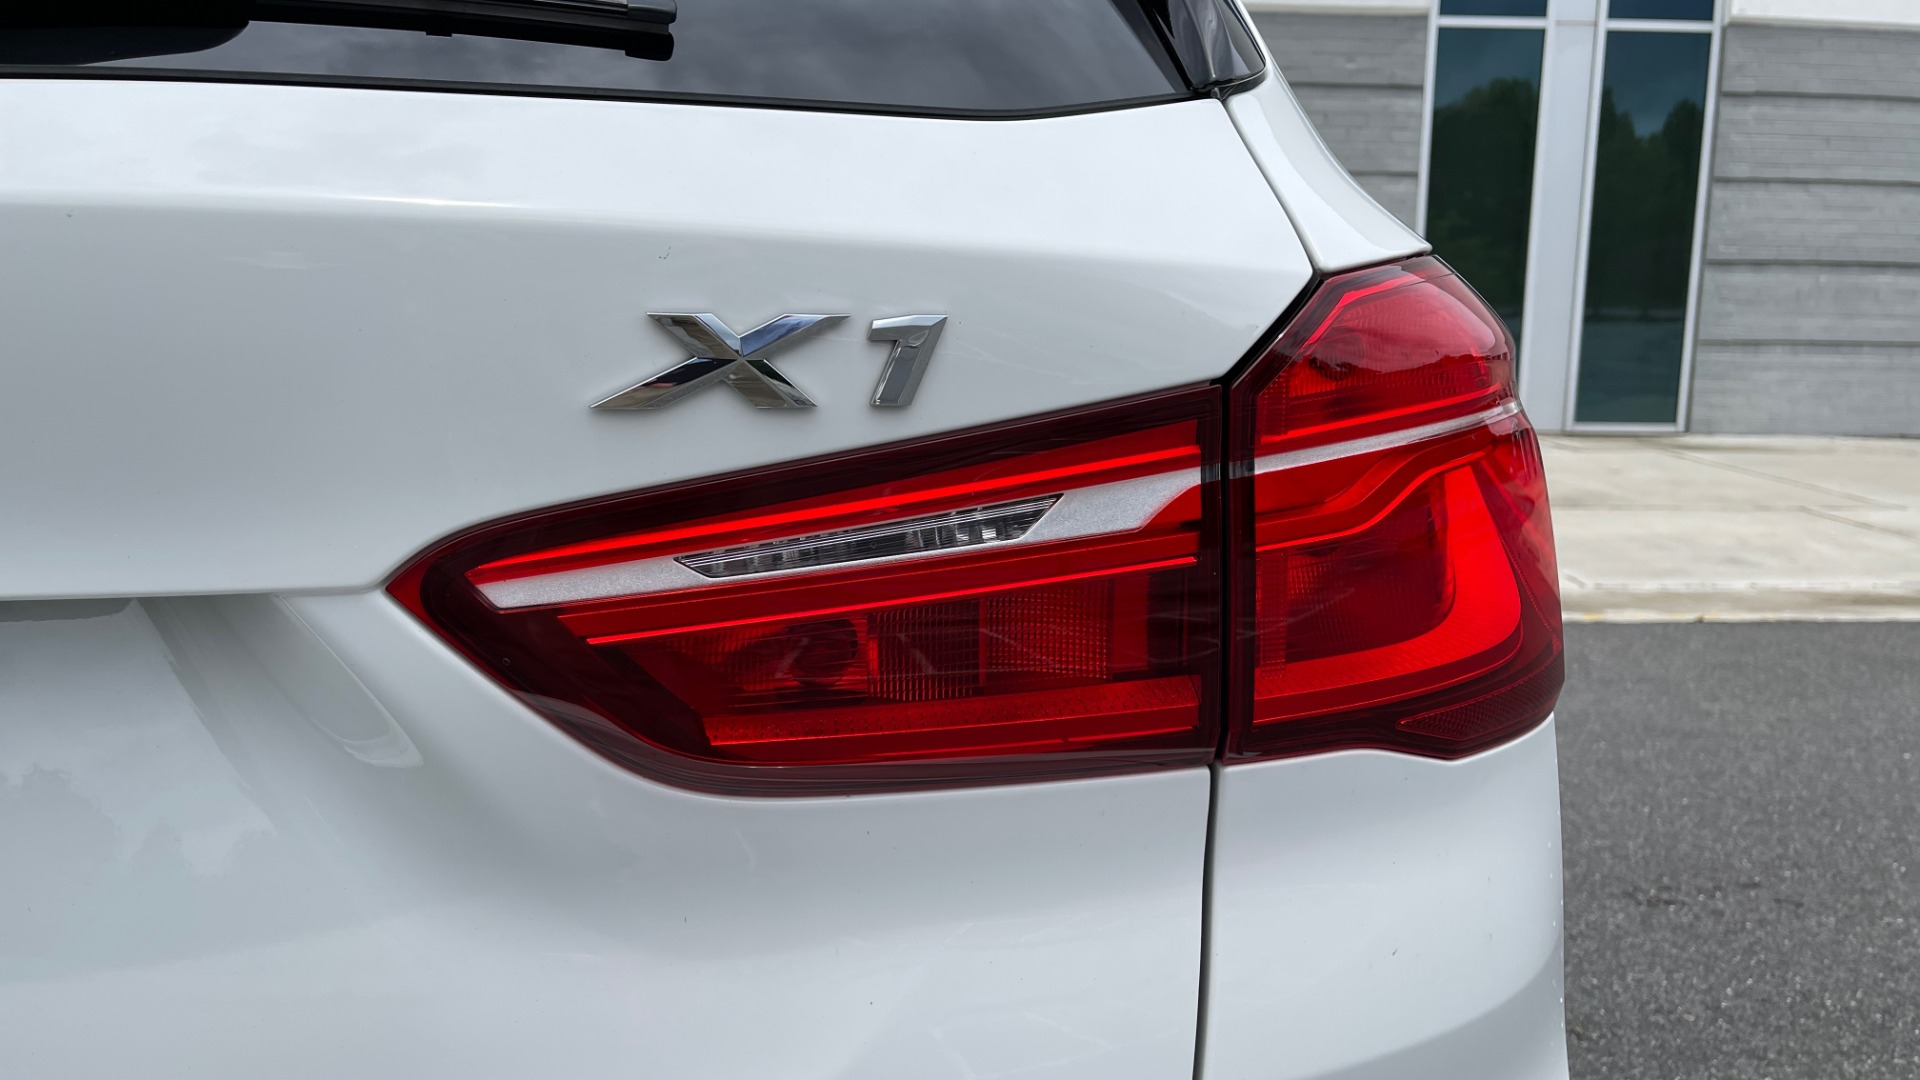 Used 2018 BMW X1 XDRIVE28I / CONV PKG / PANO-ROOF / HTD STS / PARK ASST / REARVIEW for sale $30,995 at Formula Imports in Charlotte NC 28227 30